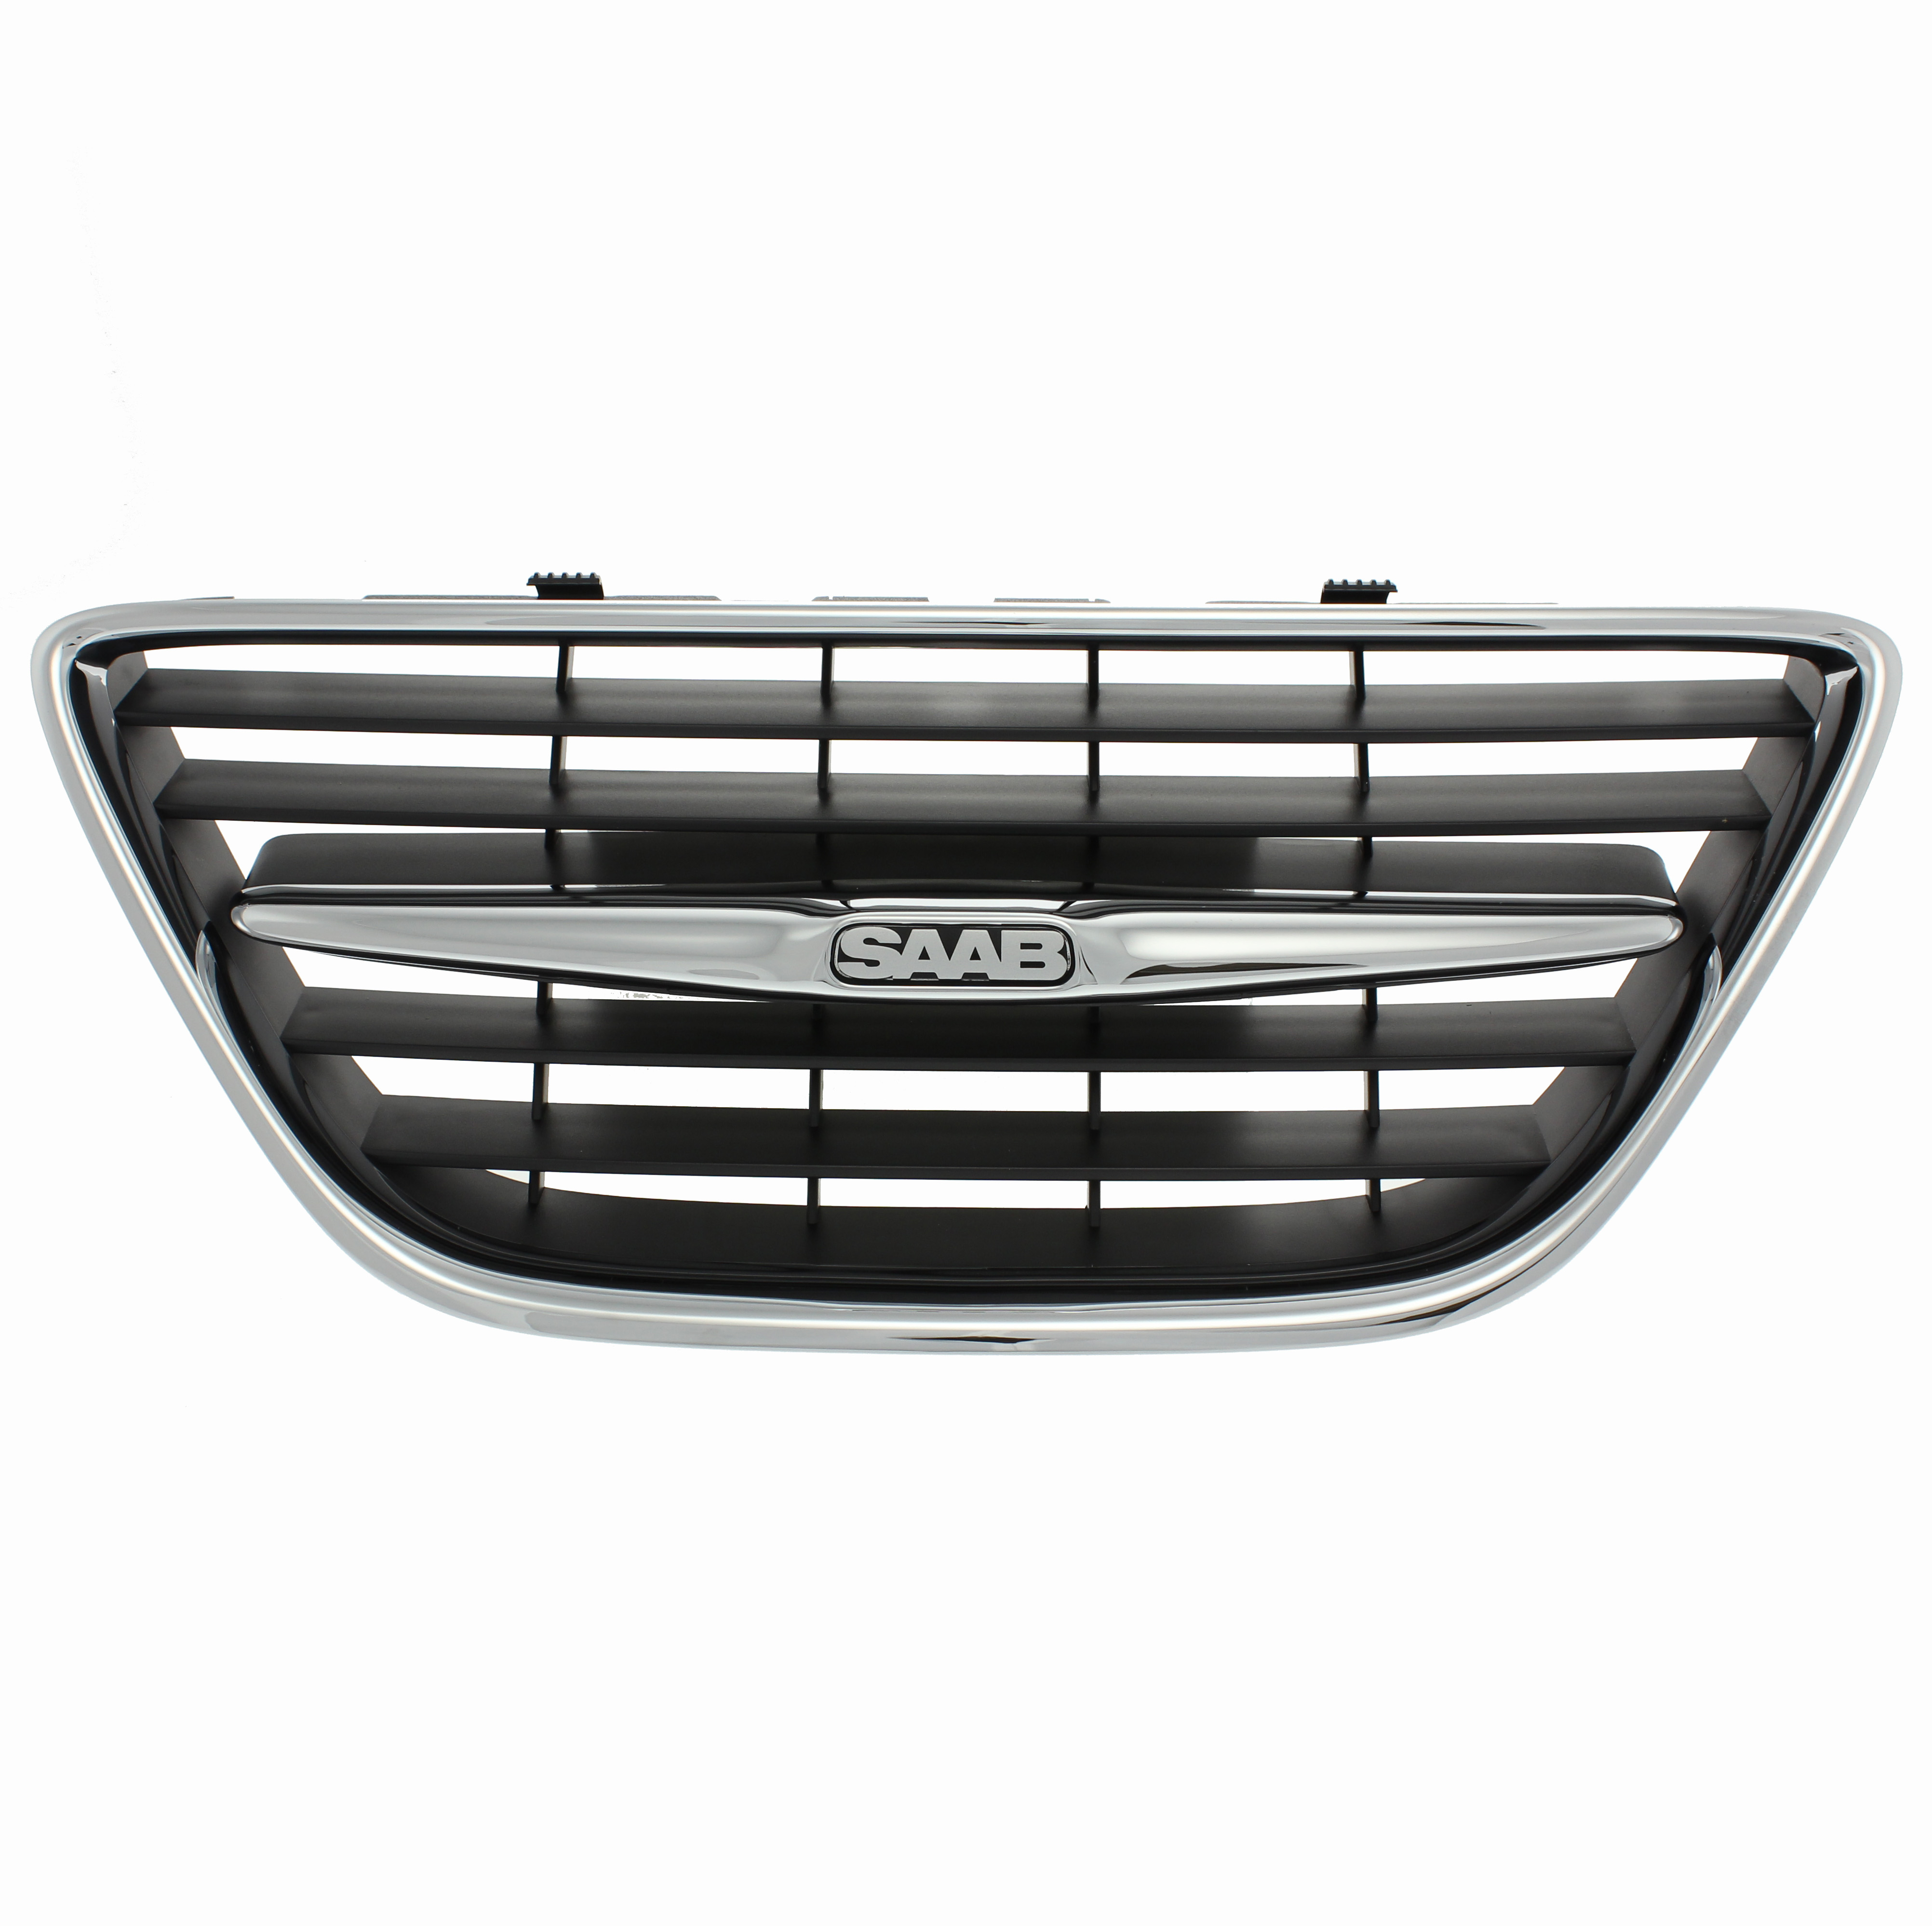 5289681 saab grille genuine saab parts from esaabparts grille sciox Image collections